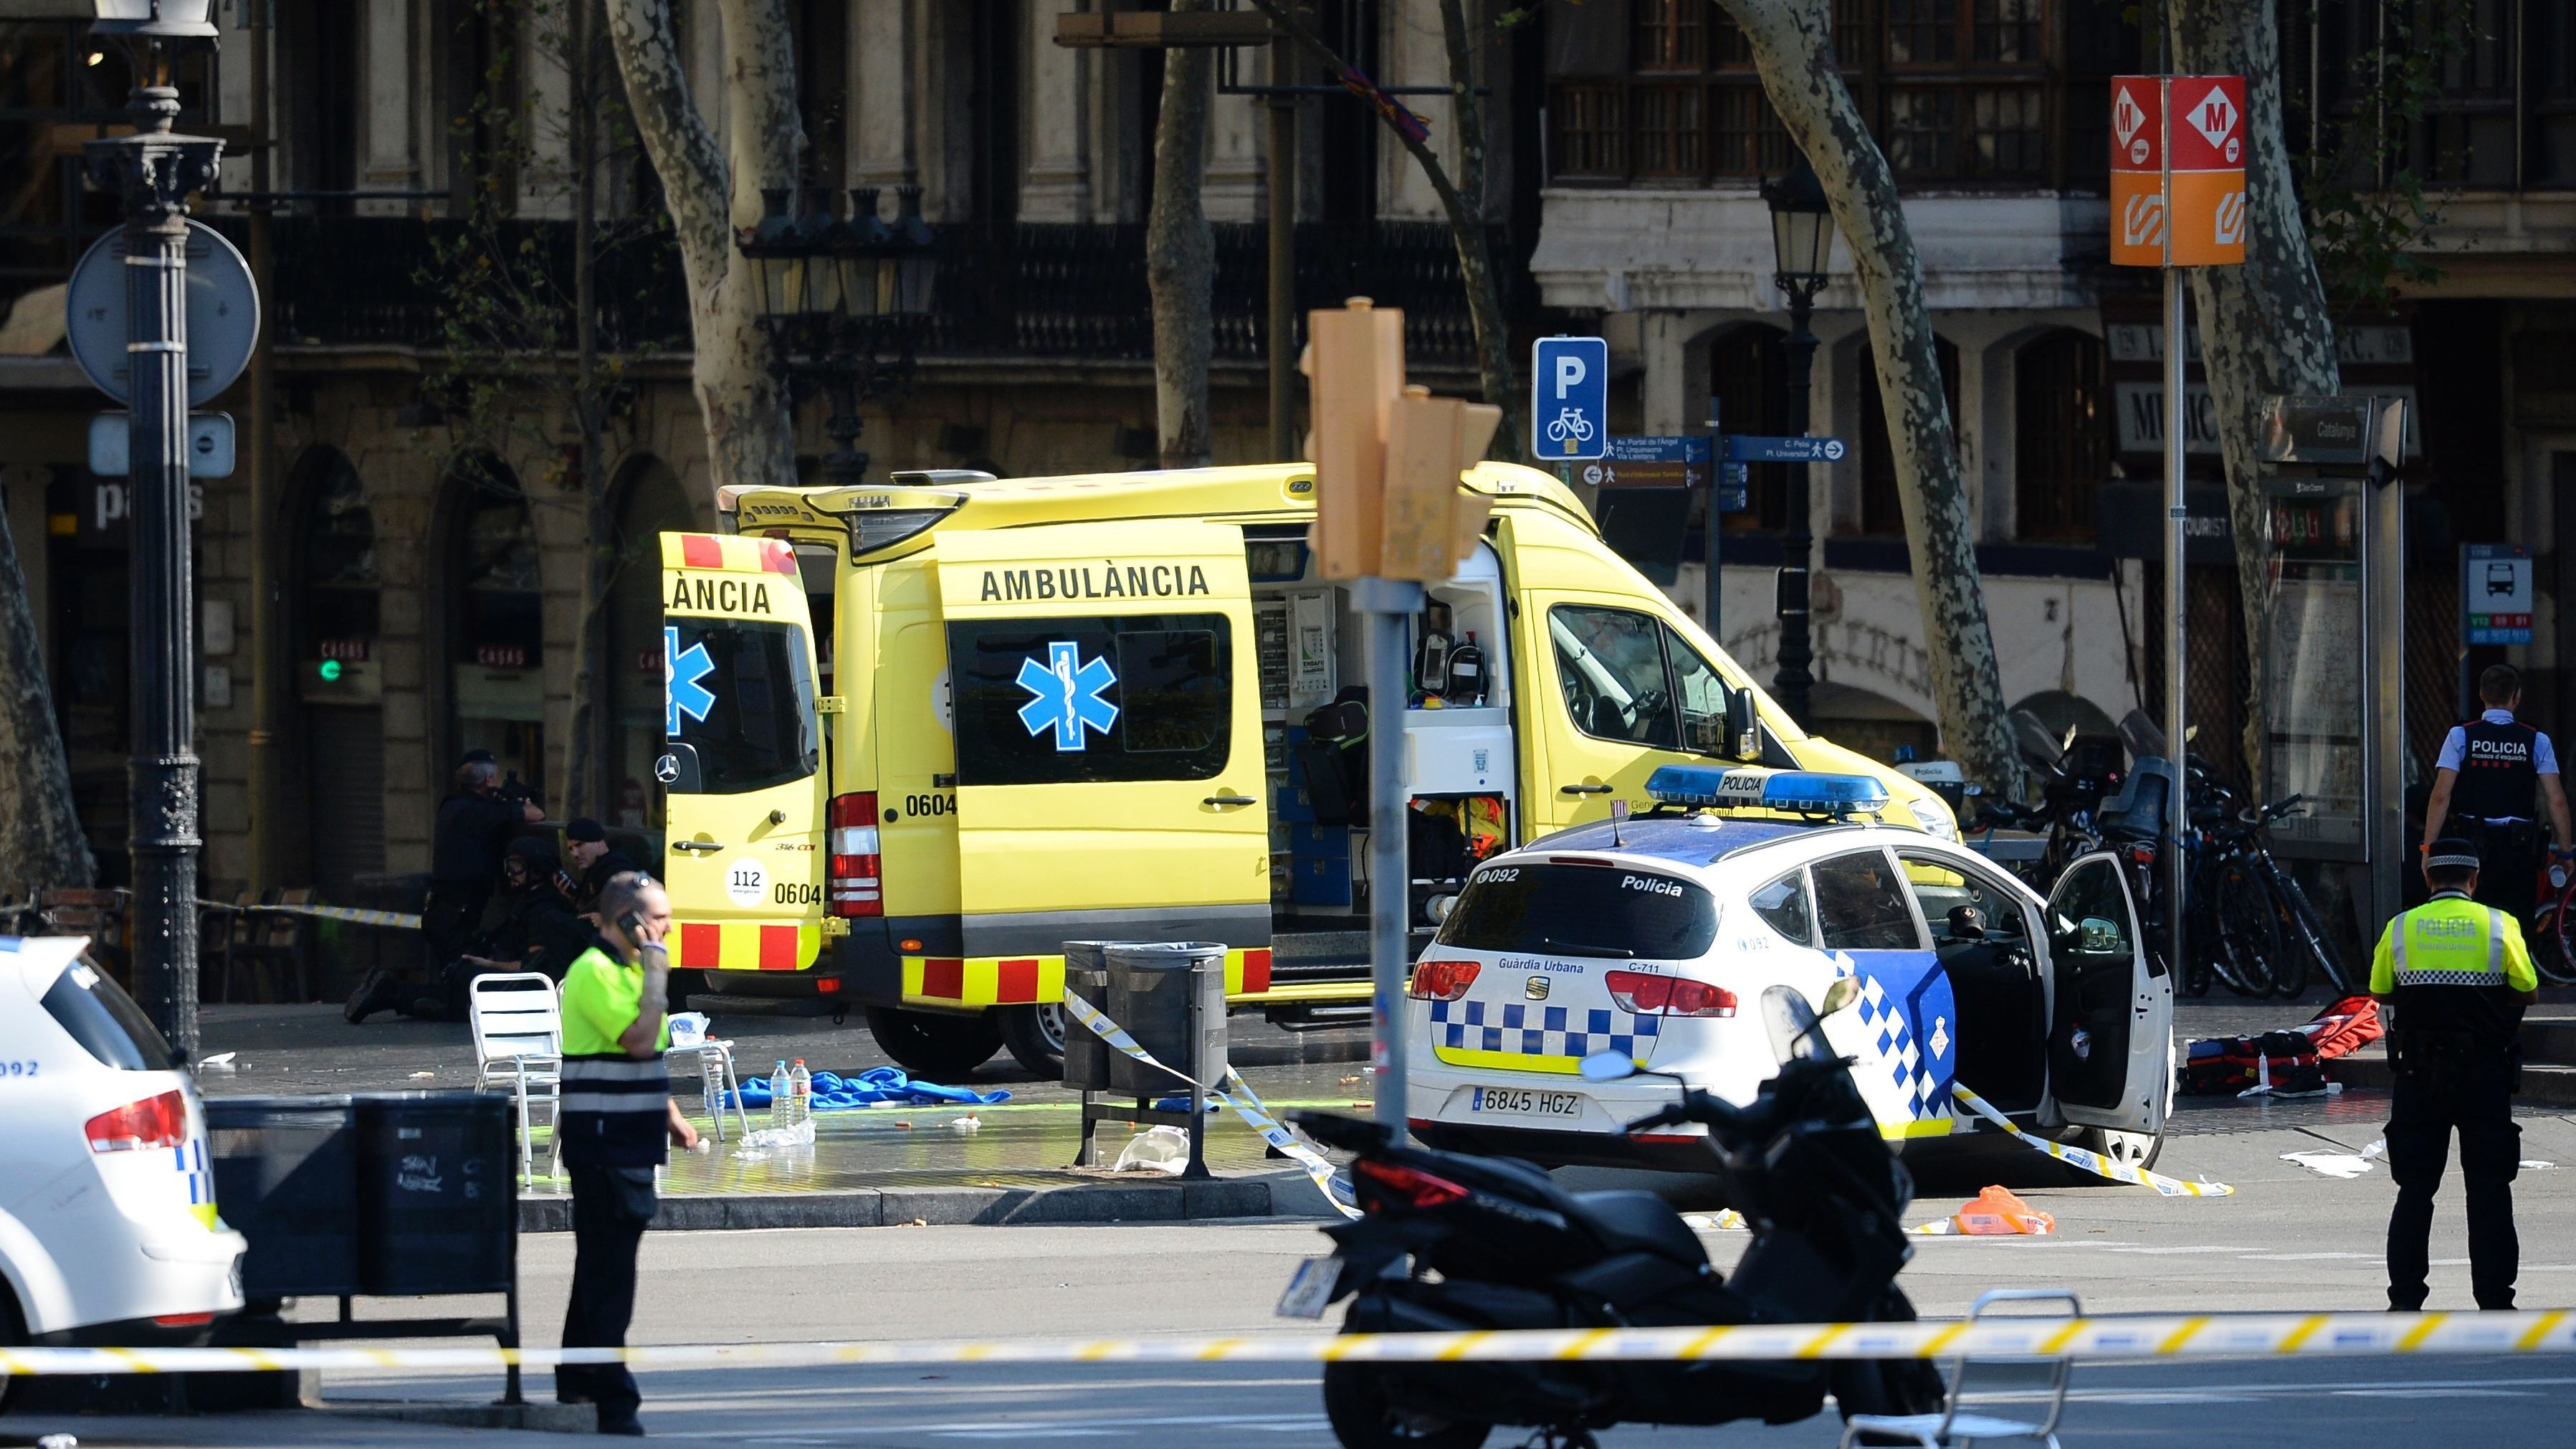 Emergency personnel cordon off the area where a van plowed into a crowd on Las Ramblas boulevard in Barcelona on Thursday. (Josep Lago/AFP/Getty Images)